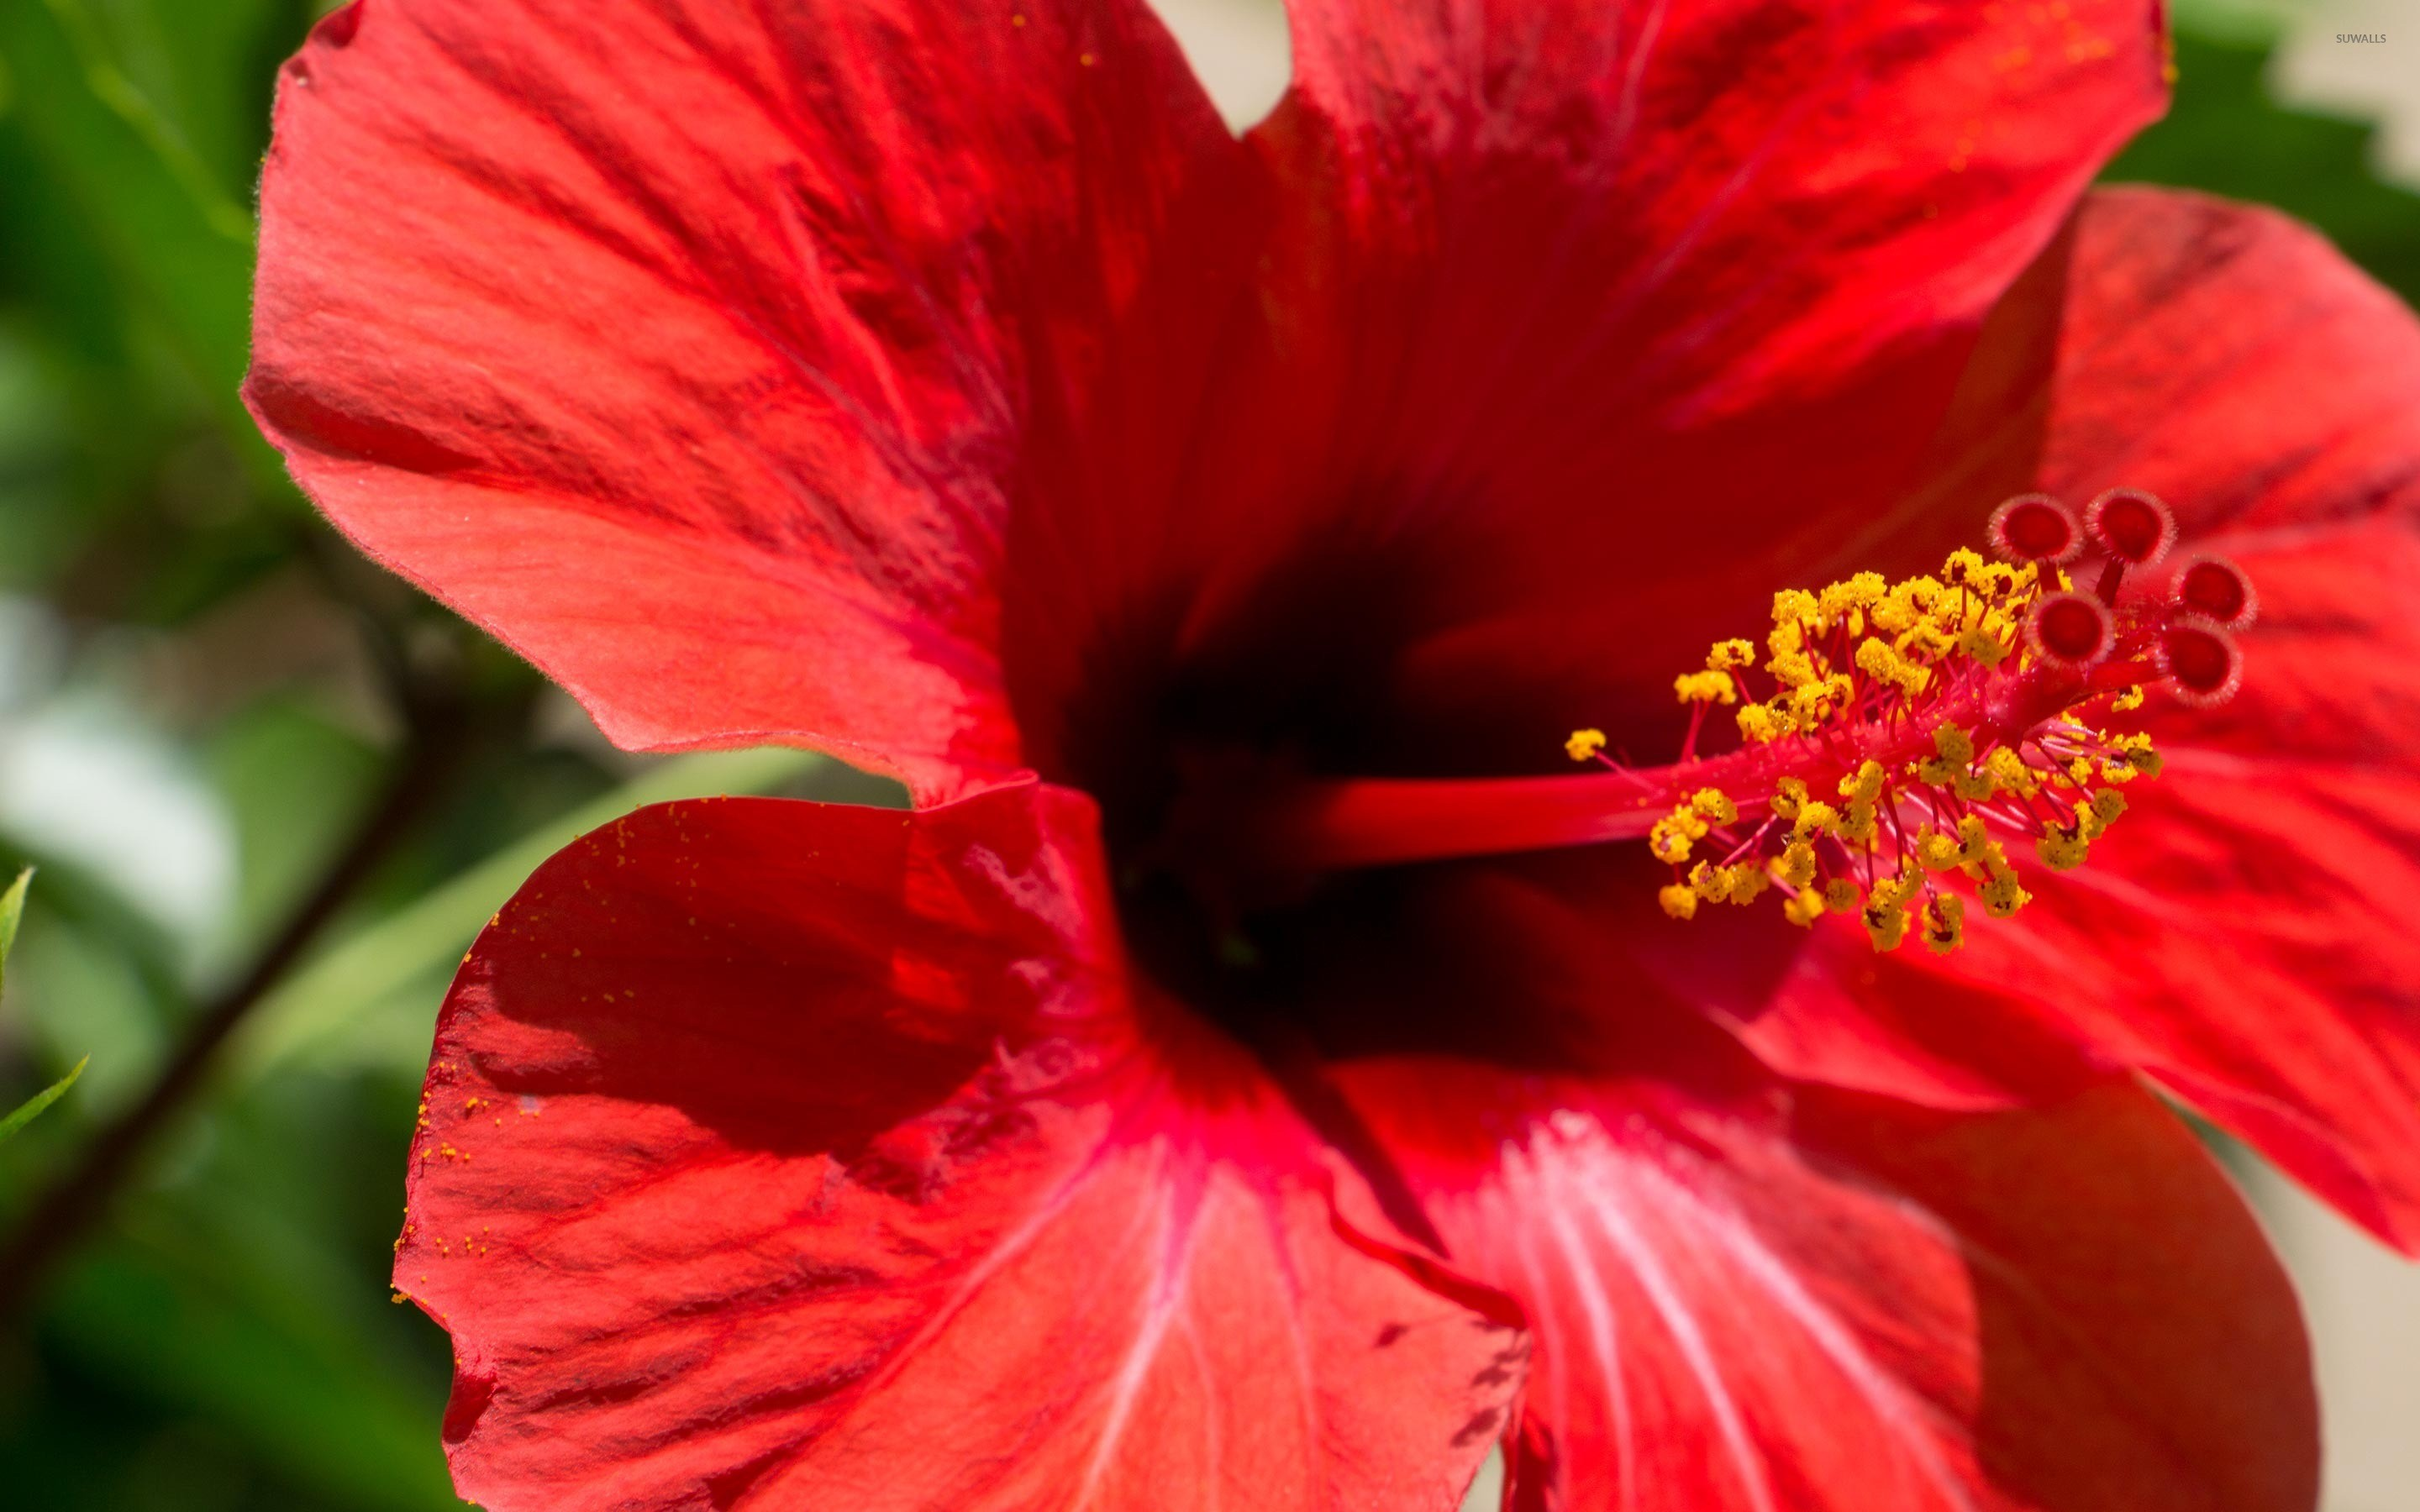 Res: 2880x1800, Red Hibiscus blossom close-up wallpaper